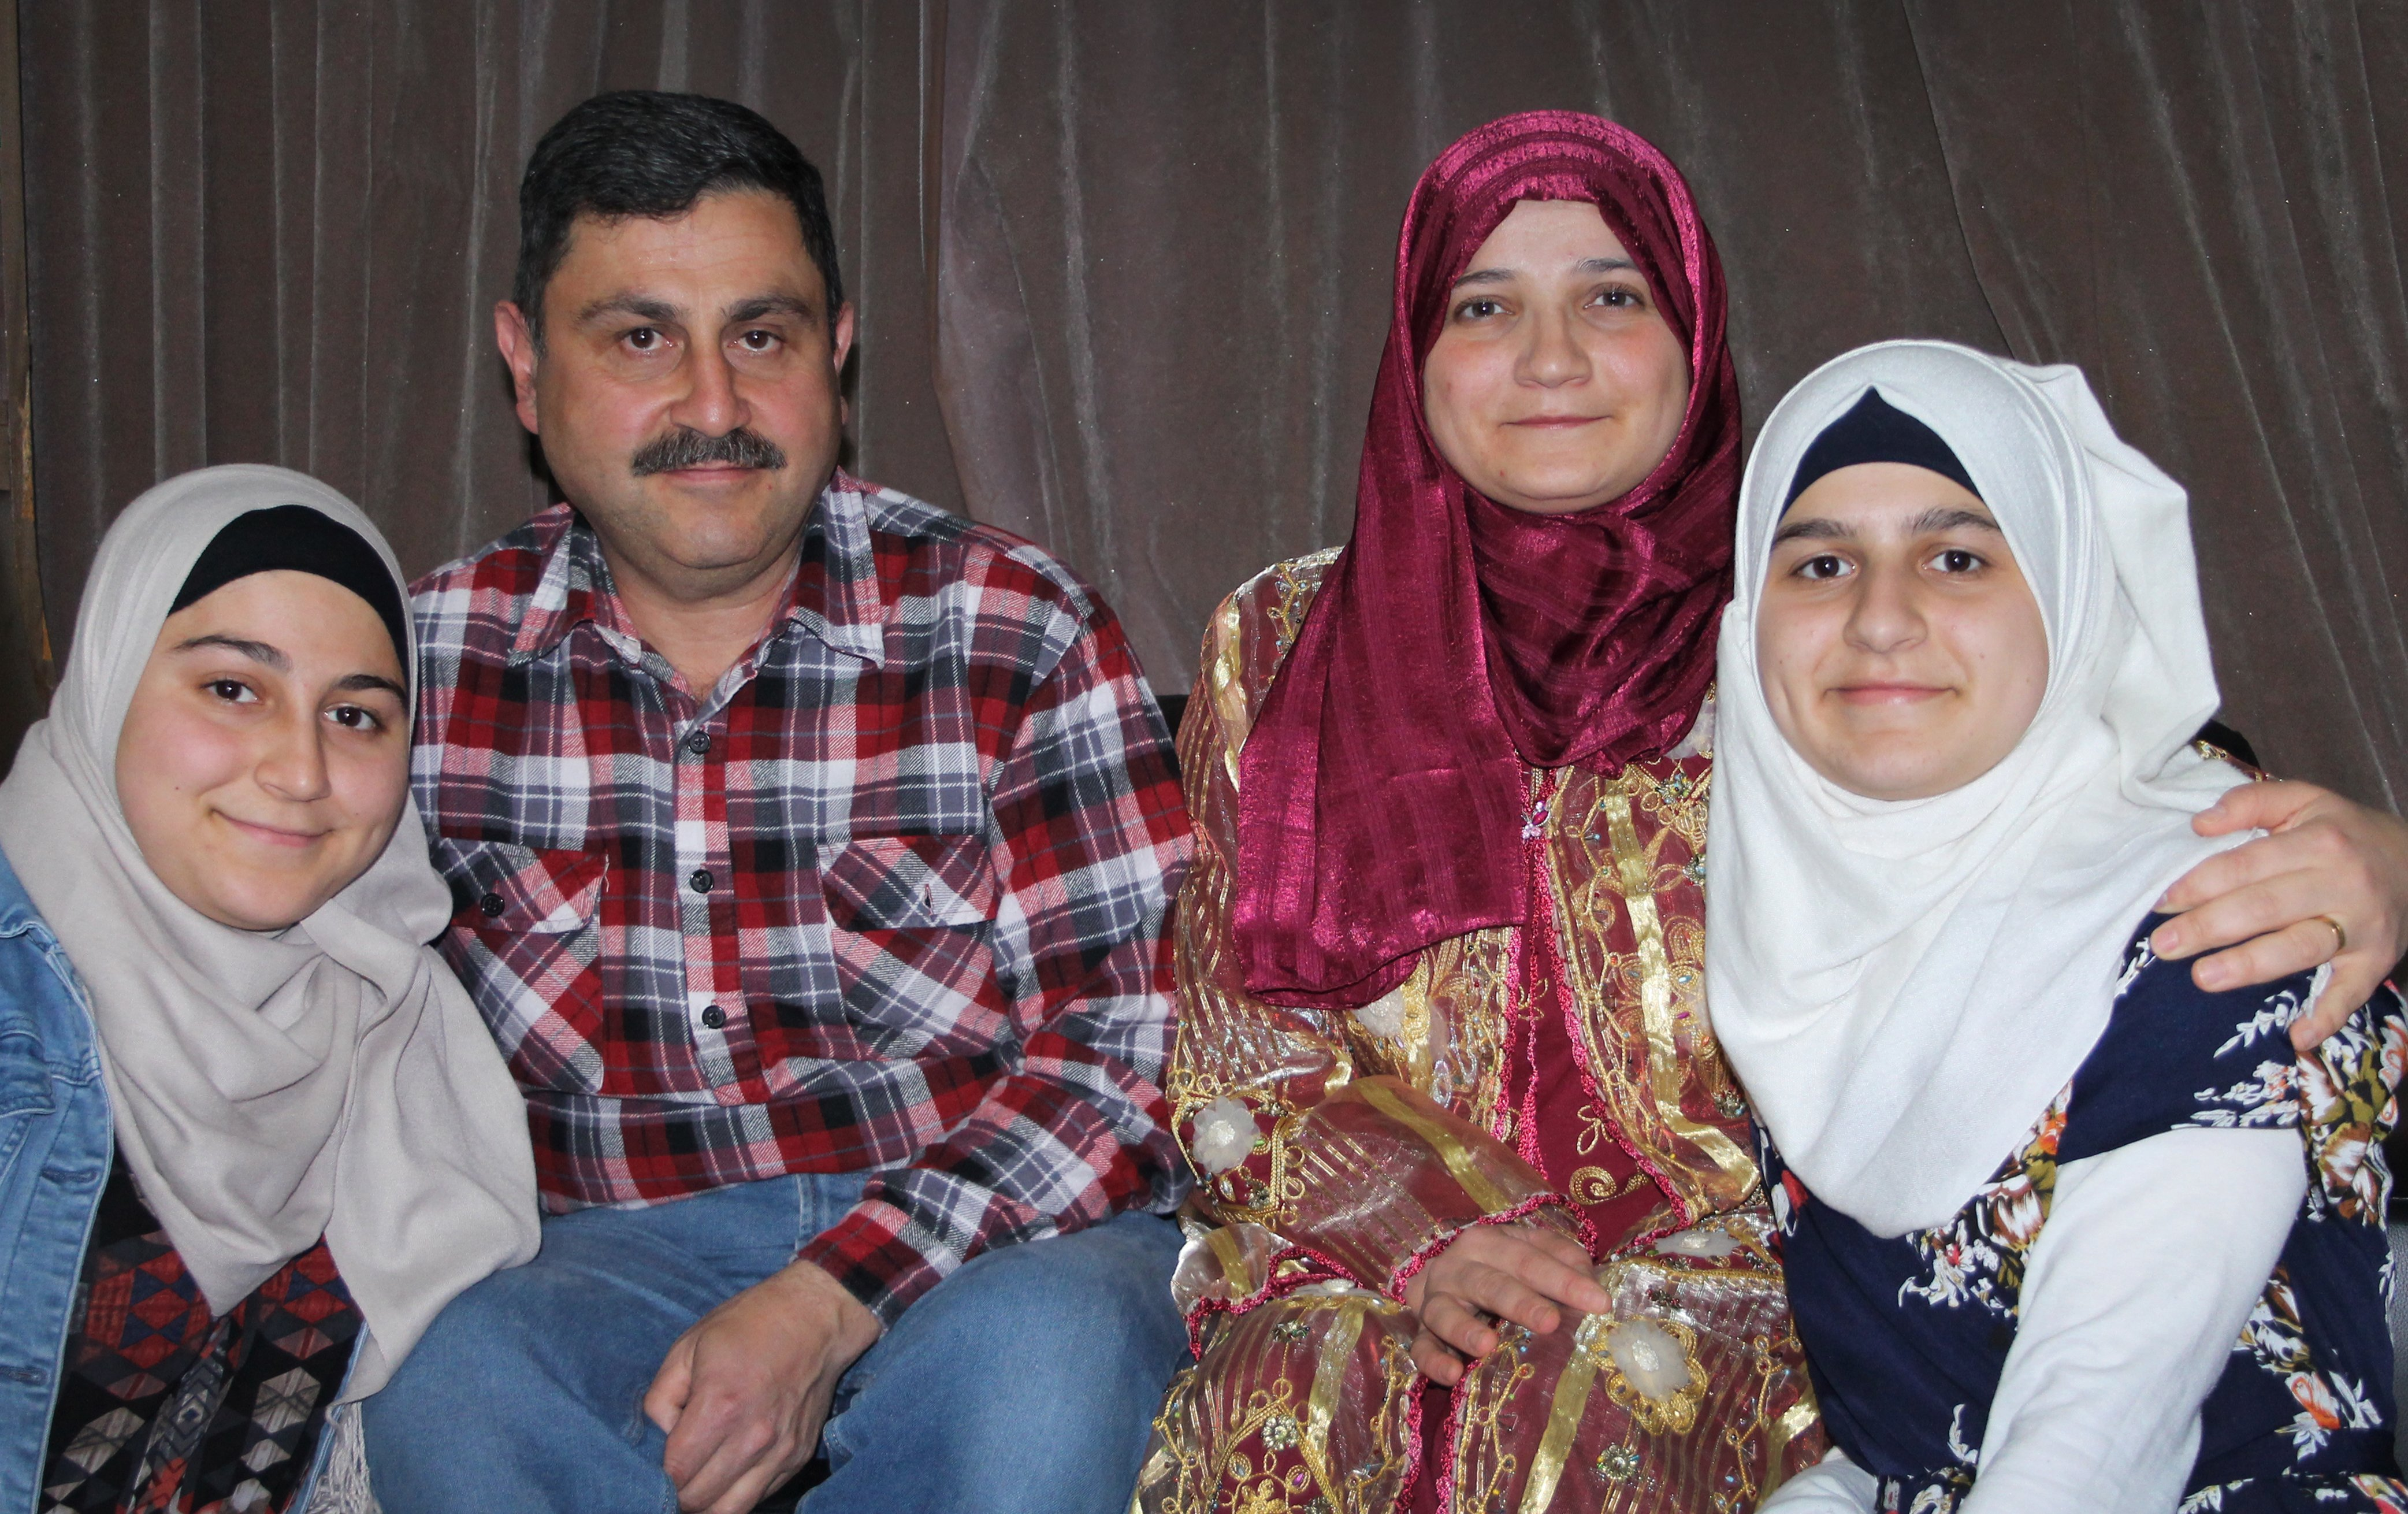 The Ghazzoul family from Syria, (from left) Nagham (18), Ghassan, Waad Alsaid and Naya (17)....